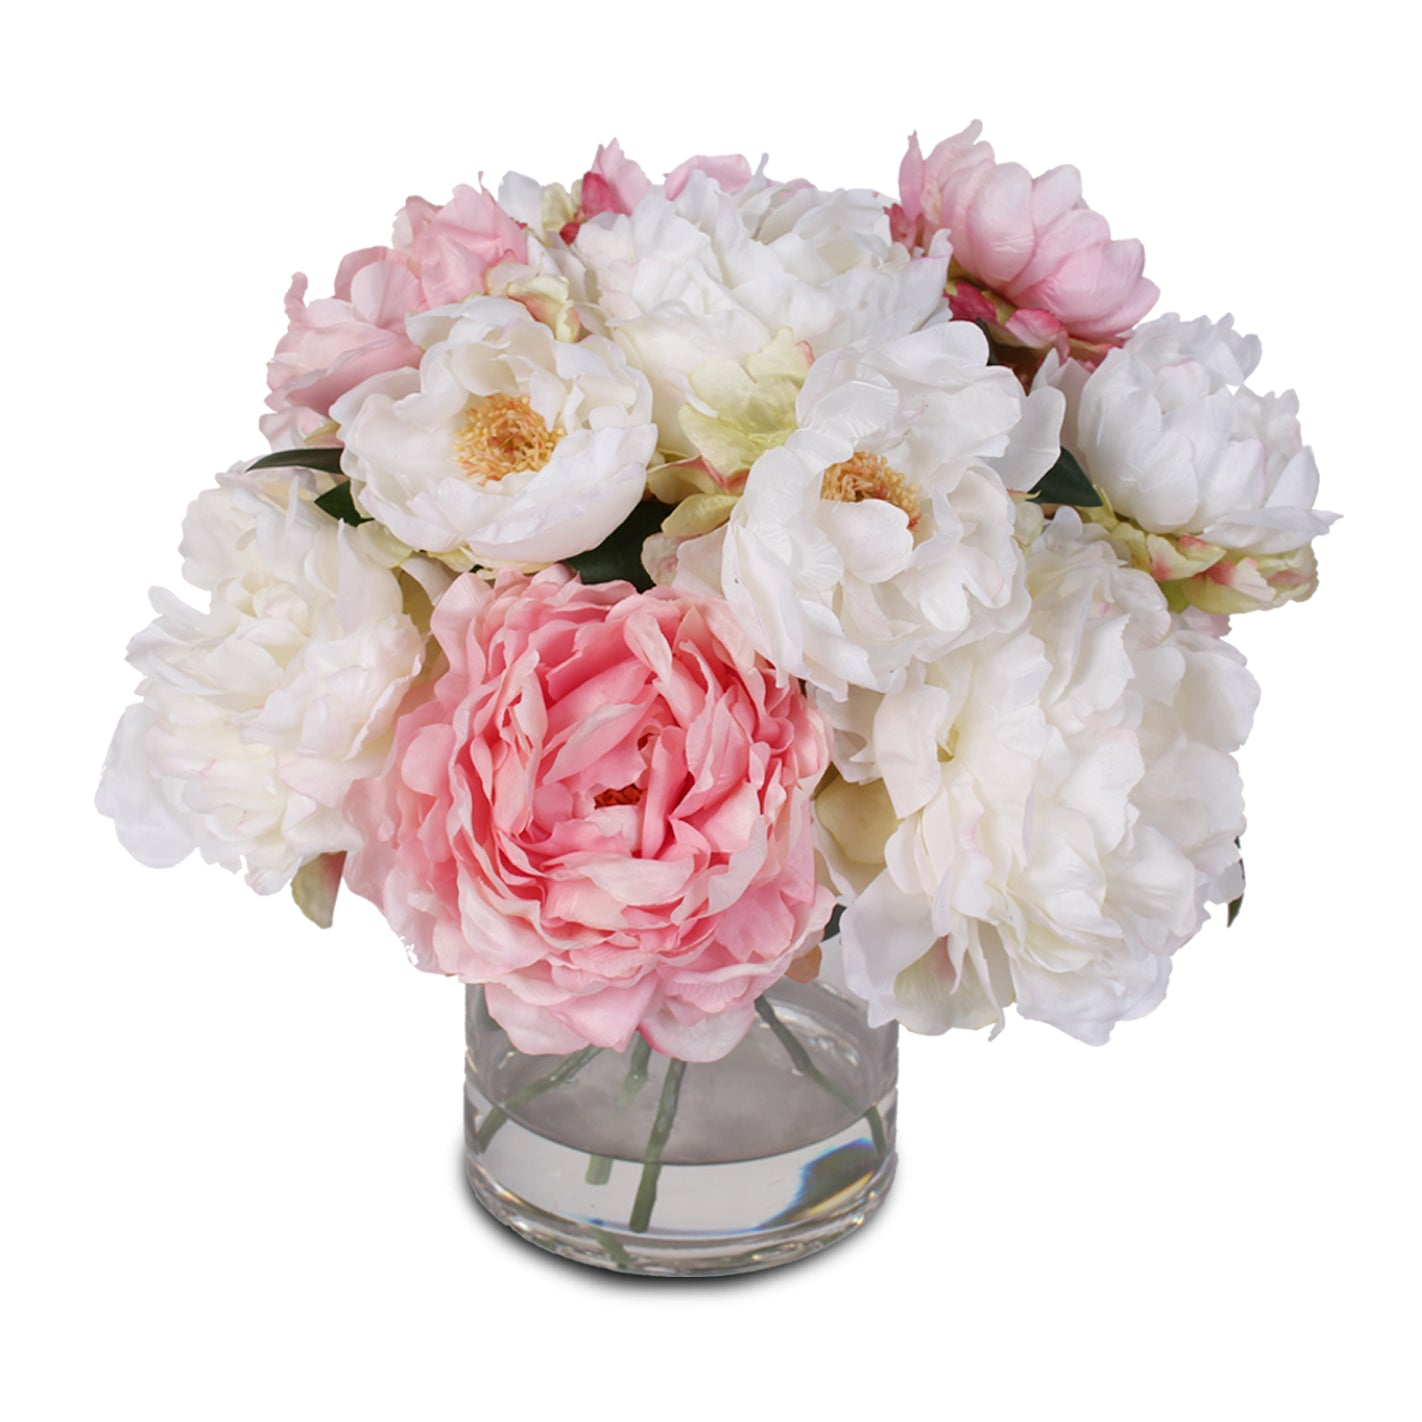 Silk french peonies bouquet in glass vase with fake water 46w silk french peonies bouquet in glass vase with fake water 46w reviewsmspy